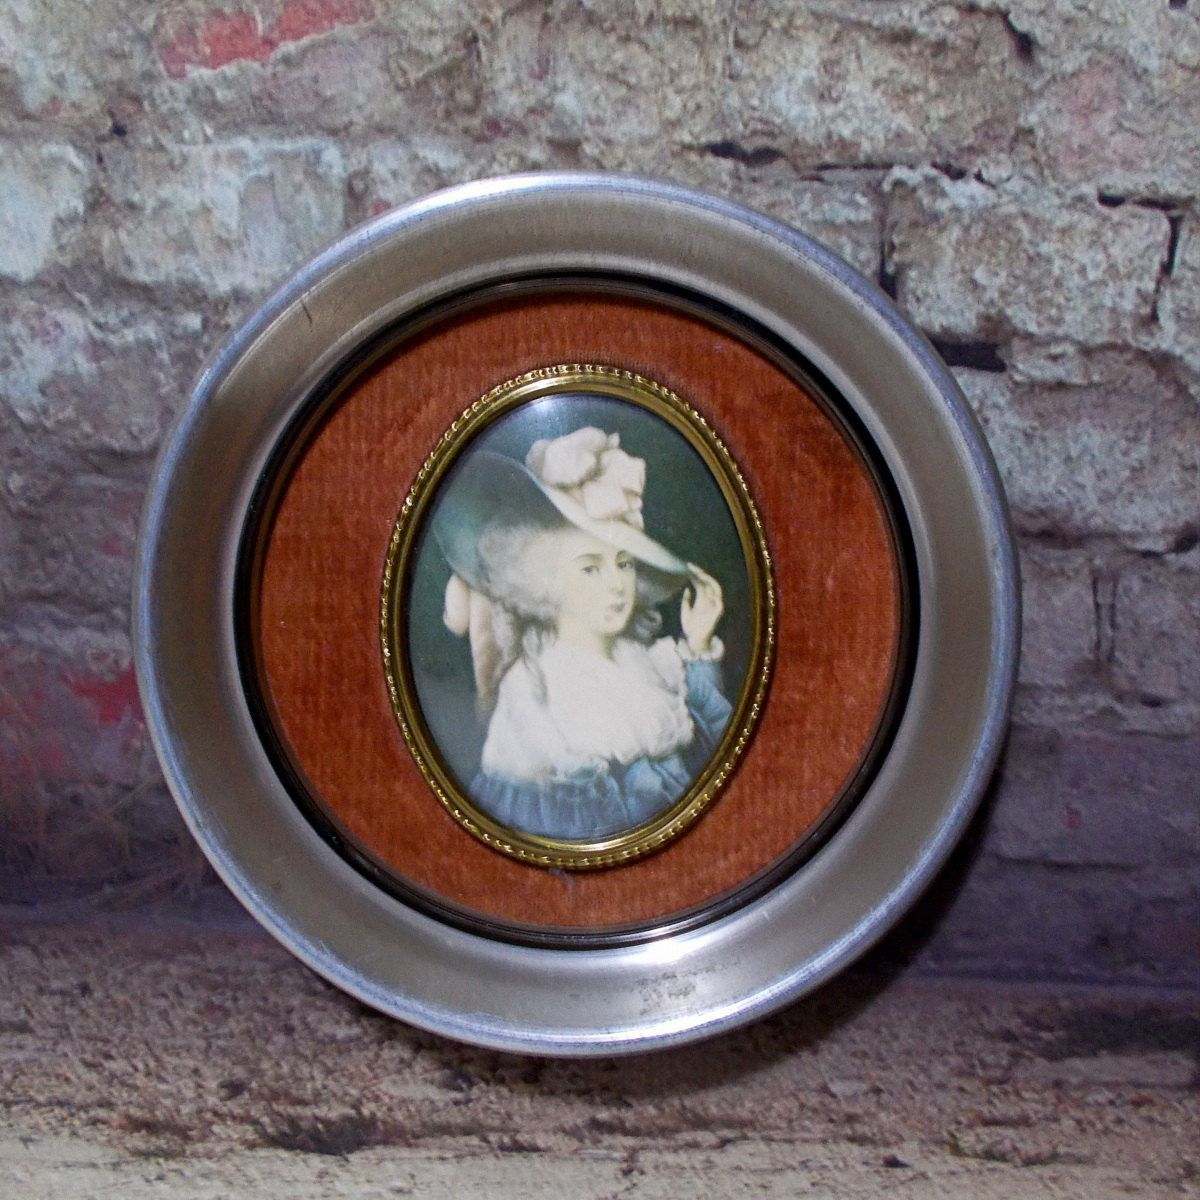 Cameo creations picture elizabeth duchess of devonshire metal cameo creations picture elizabeth duchess of devonshire metal frame convex bubble glass wall hanging by tntbrbefan jeuxipadfo Images